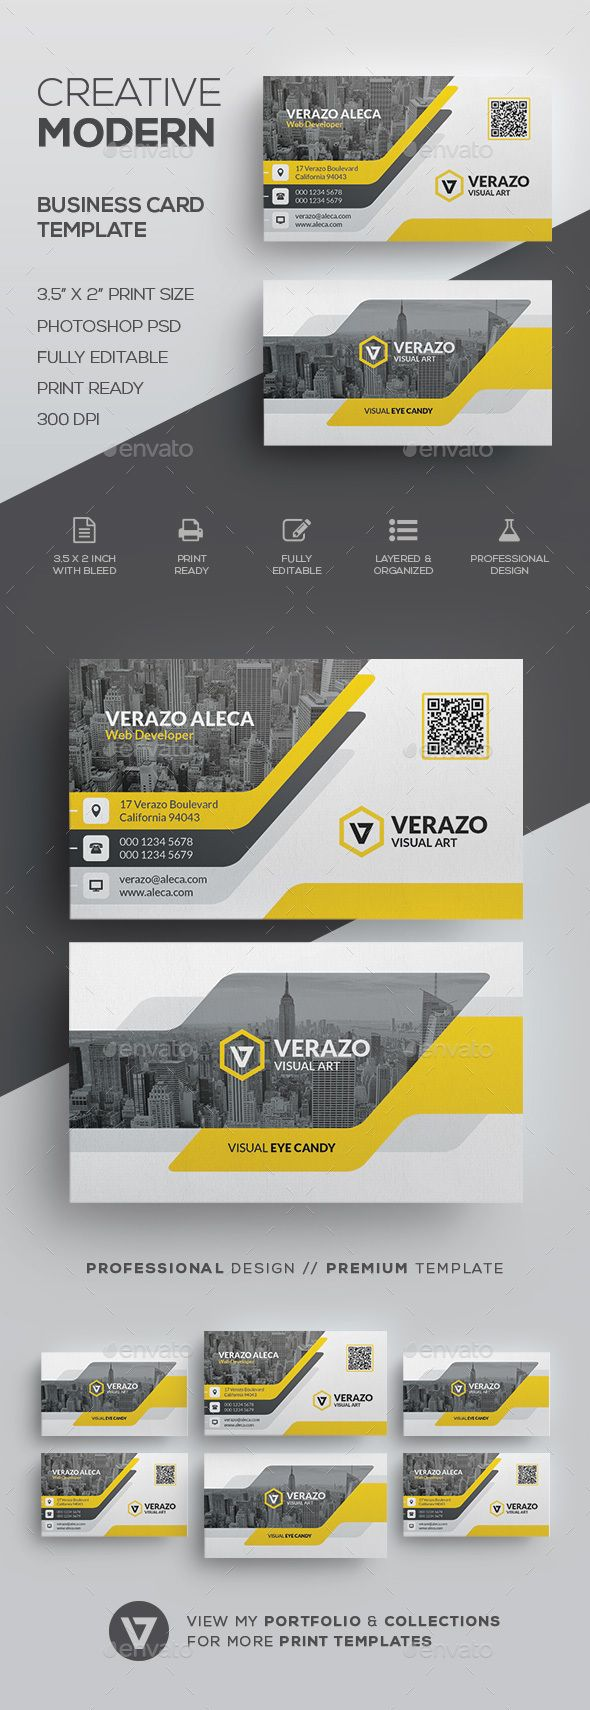 Best 25 modern business cards ideas on pinterest free business modern business card template magicingreecefo Choice Image